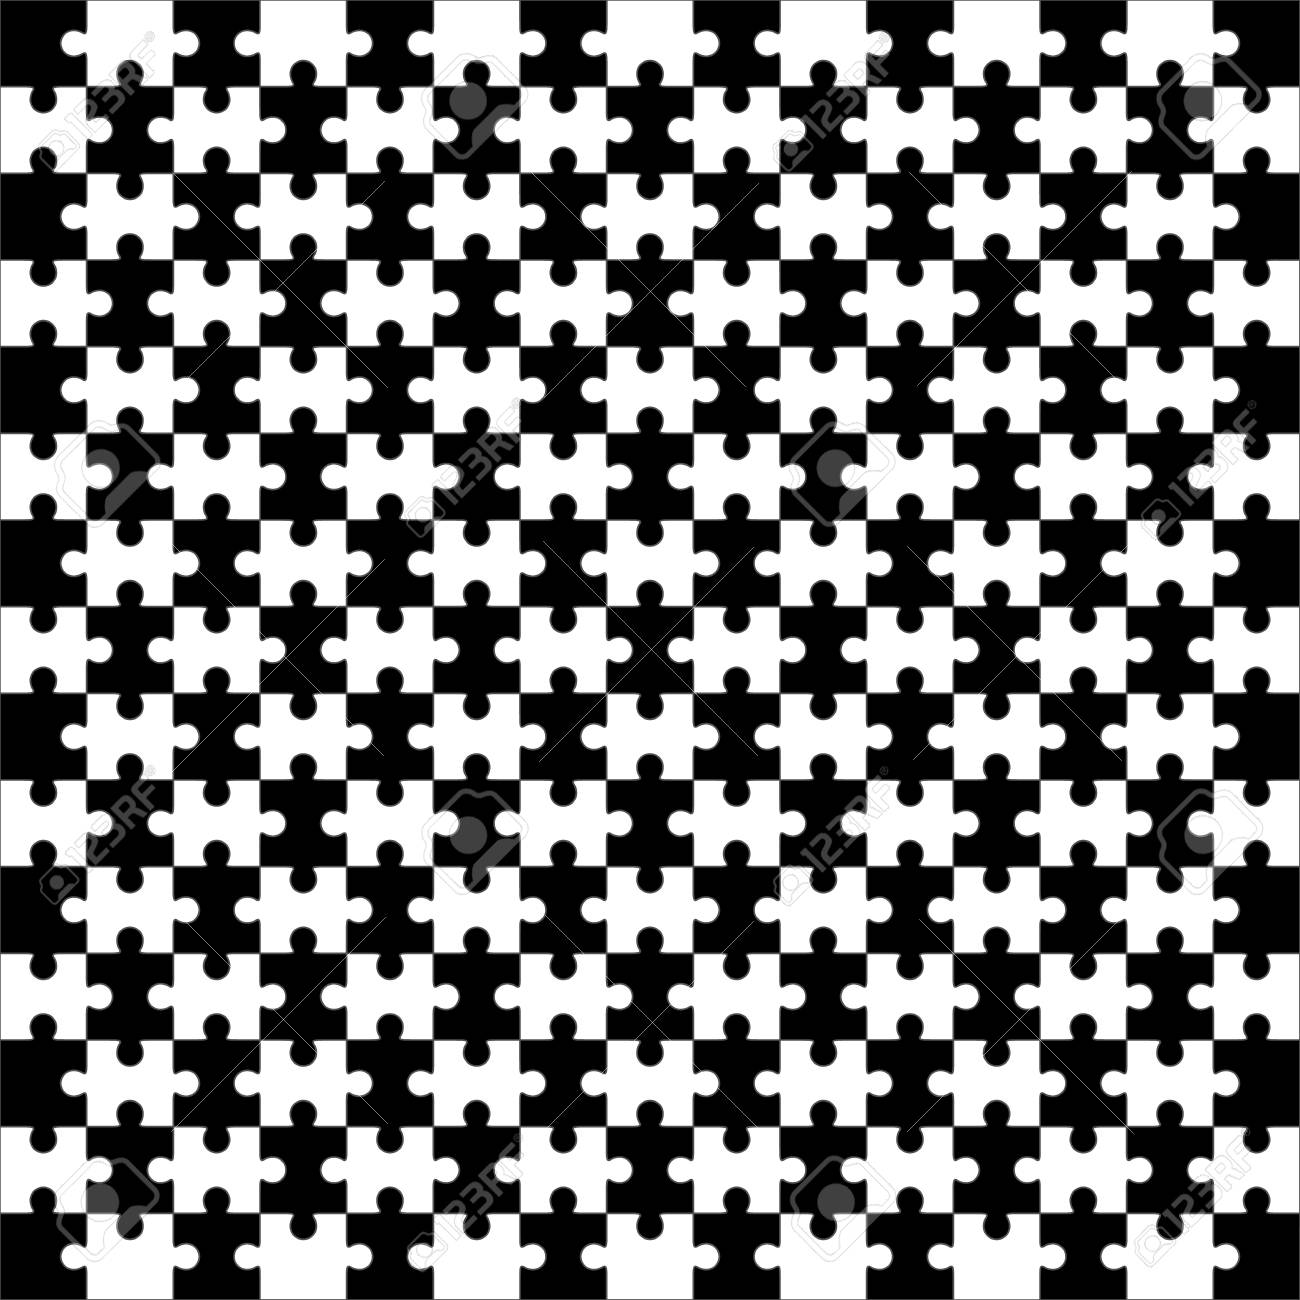 Jigsaw Puzzle Vector, Blank Simple Template, 225 Pieces Royalty Free ...